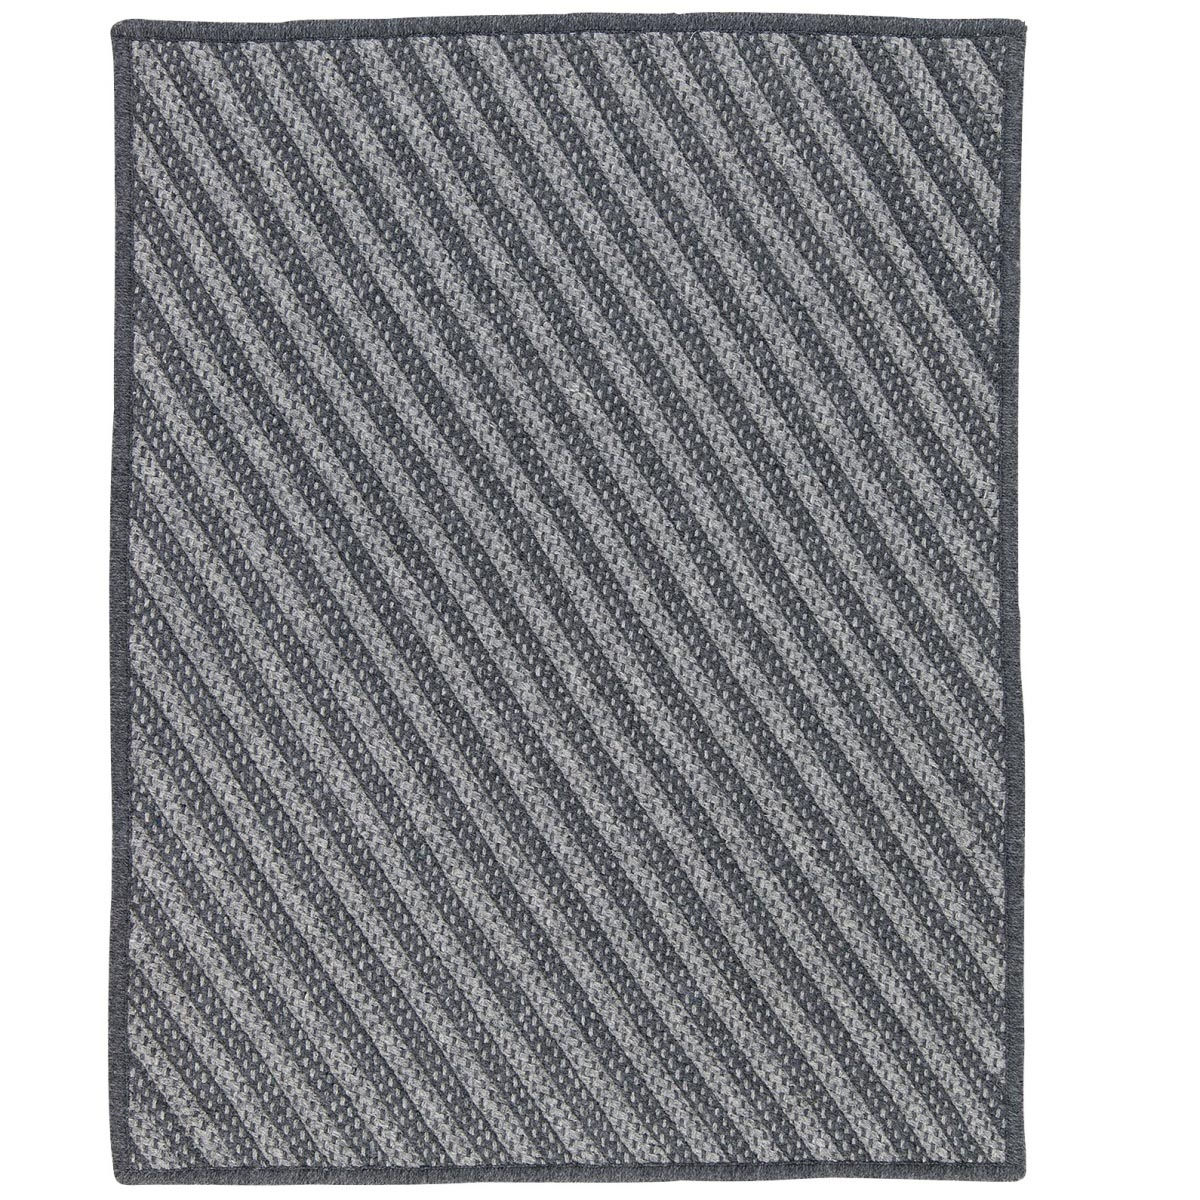 Blue Hill Charcoal Outdoor Braided Rectangular Rugs